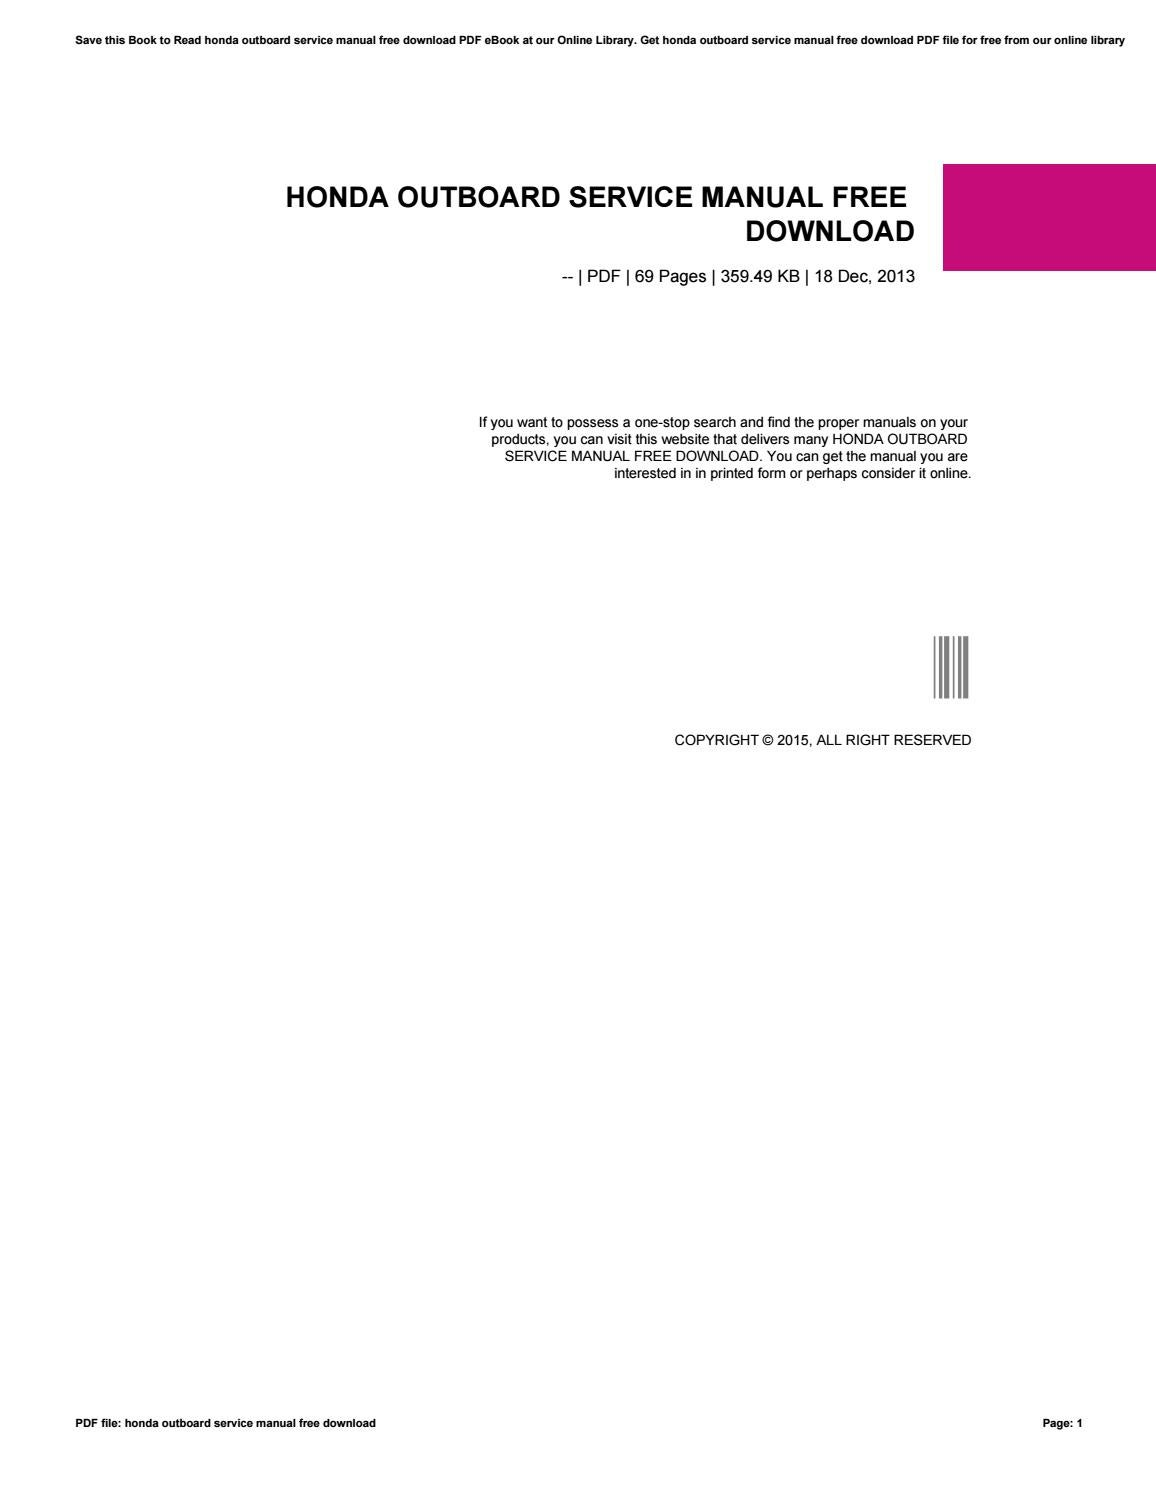 1990-2001 johnson evinrude outboard service manual 1 hp to 300 hp.